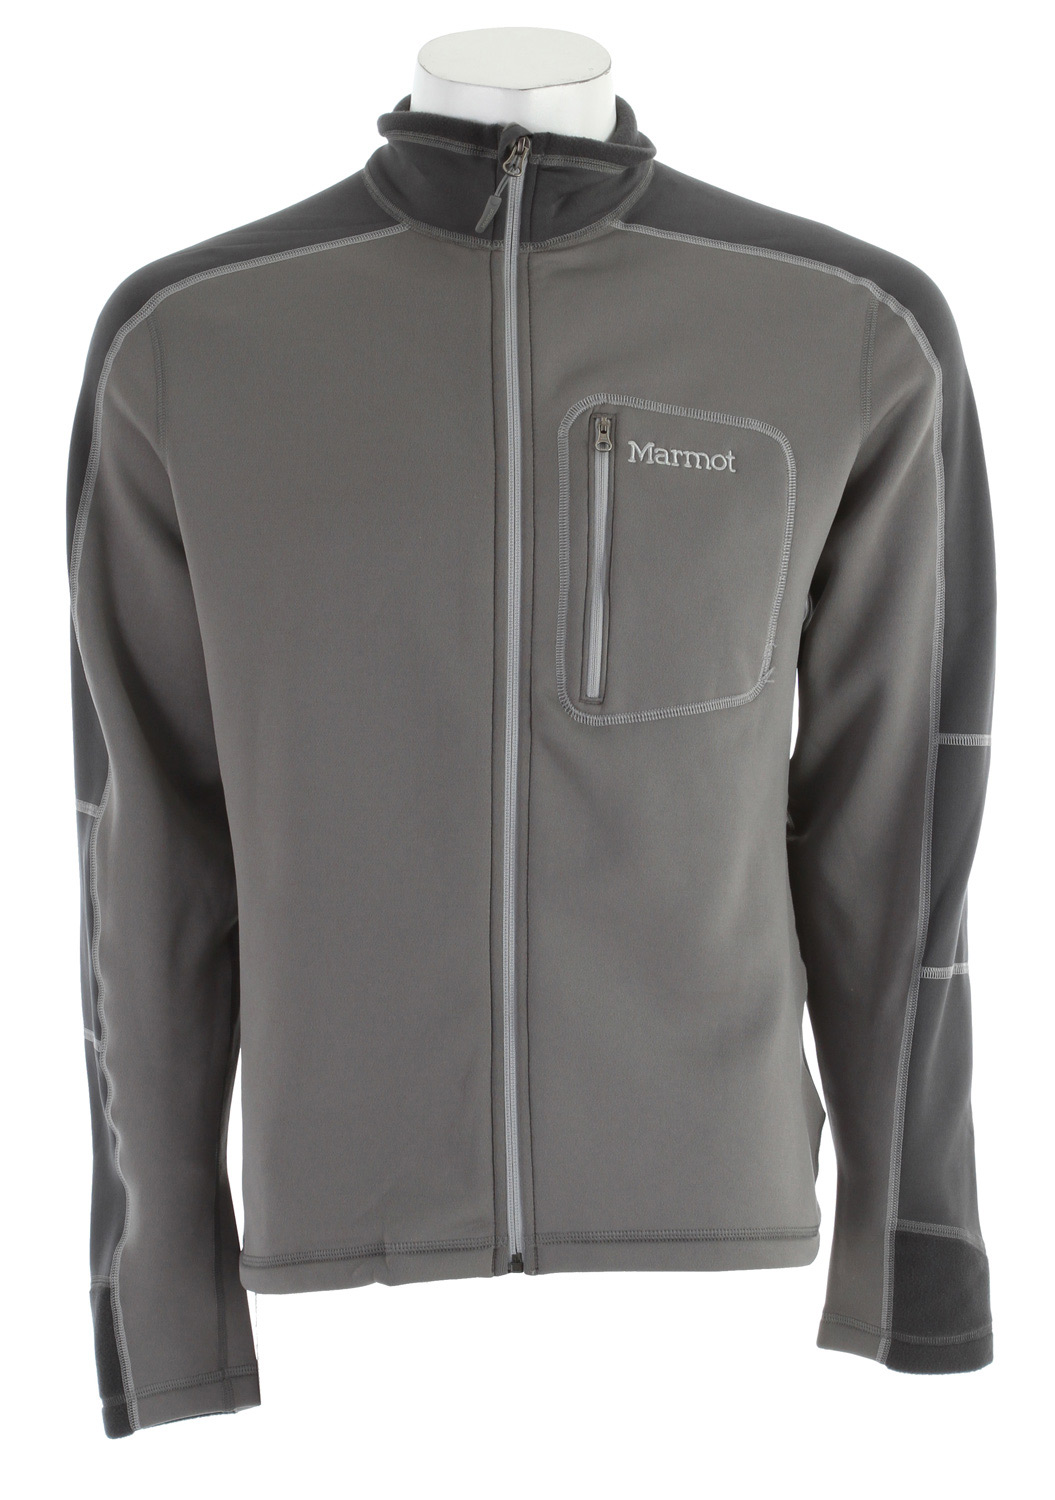 Marmot Power Stretch Fleece Gargoyle/Slate Grey - $81.95